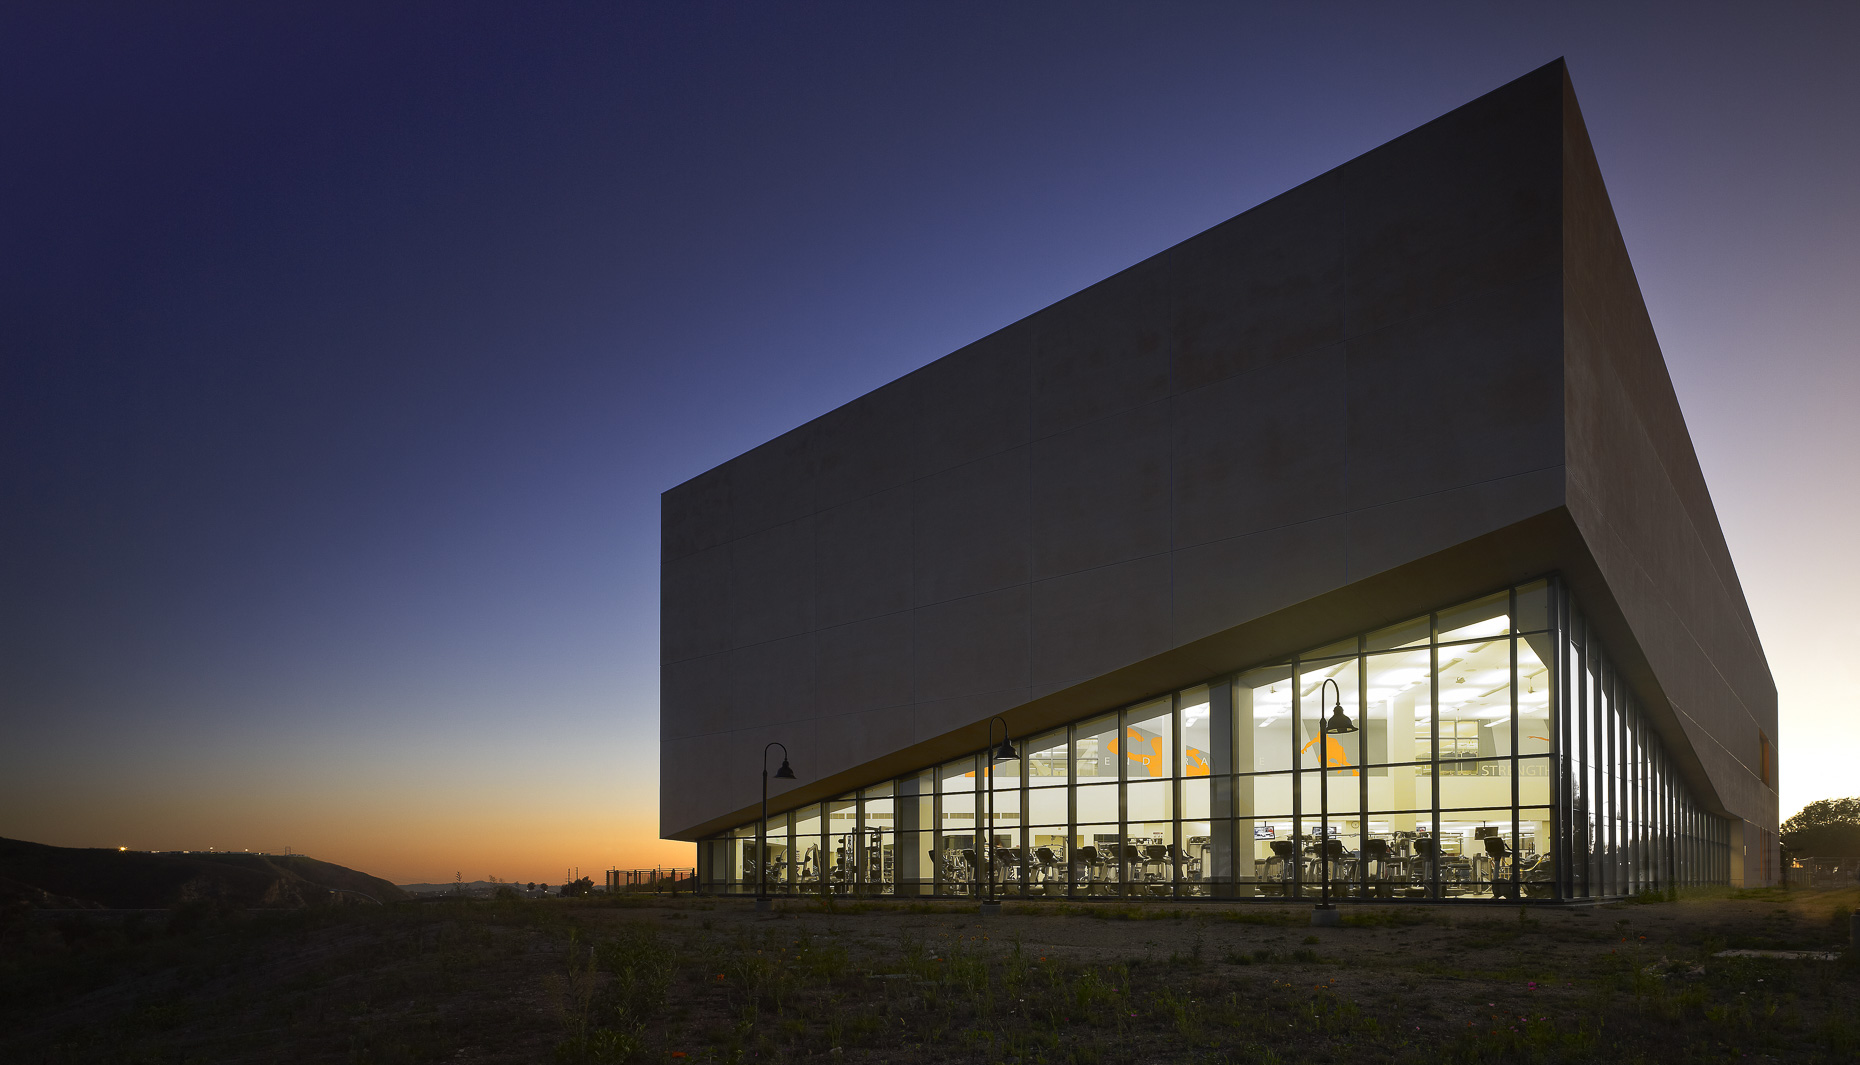 Mission College Student Recreation Center by Cannon Design photographed by Brad Feinknopf based in Columbus, Ohio